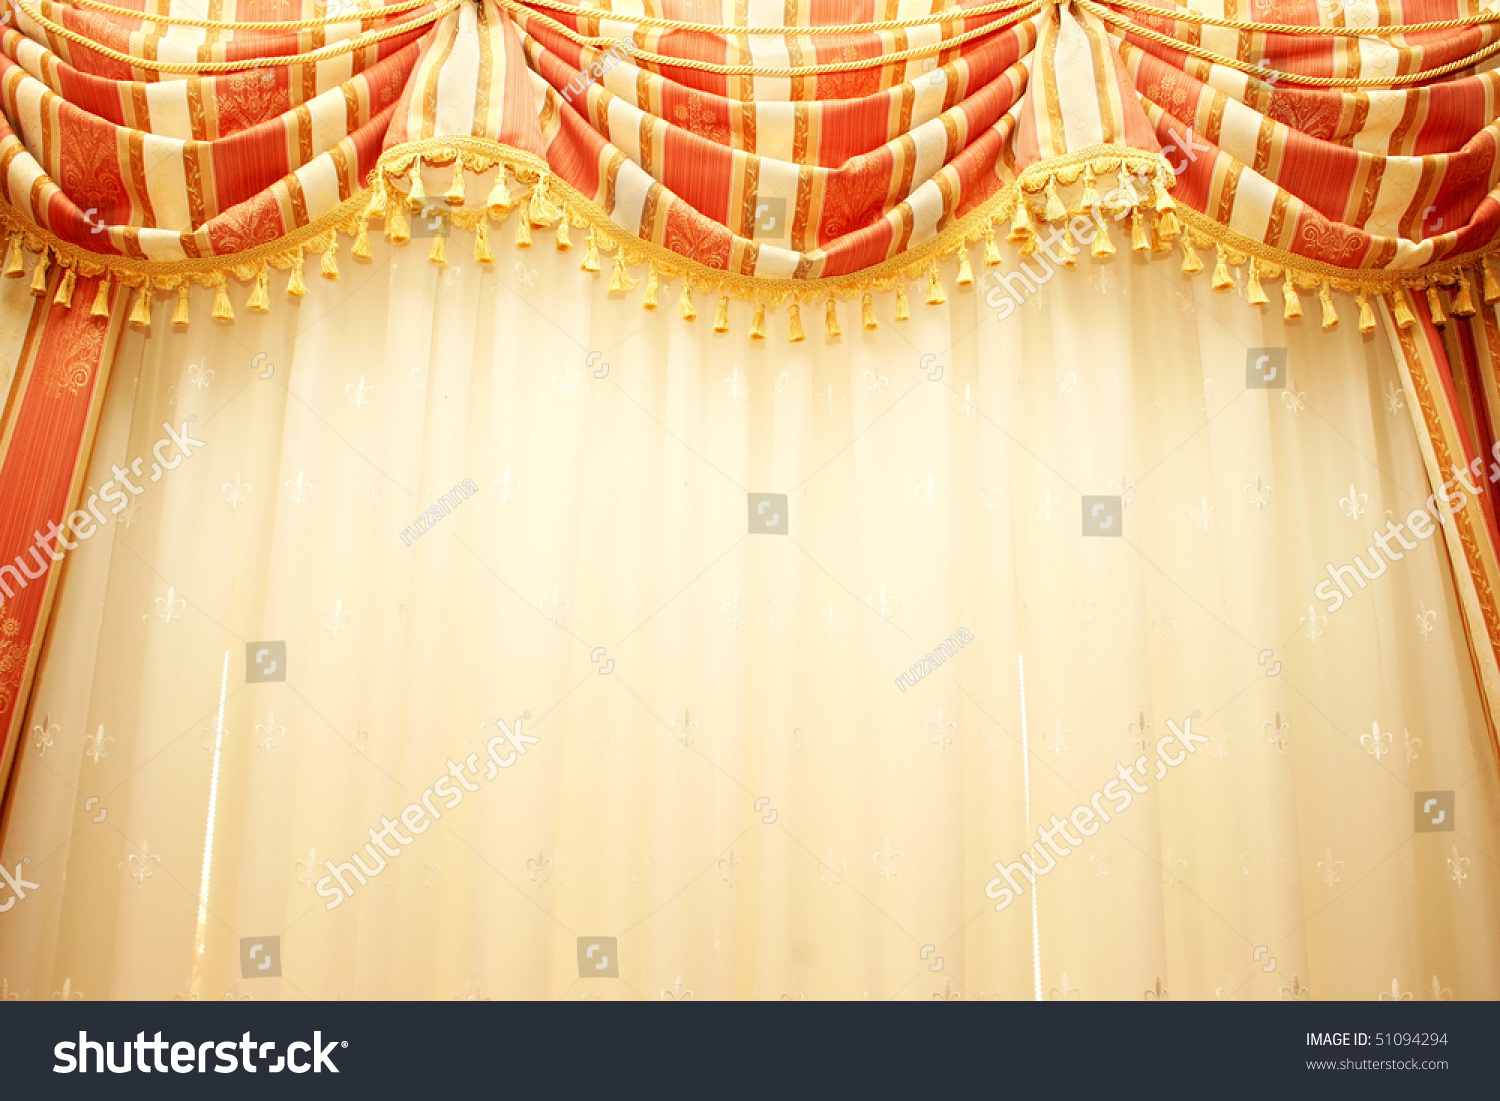 luxurious red and yellow curtains as a background stock photo 51094294 shutterstock. Black Bedroom Furniture Sets. Home Design Ideas